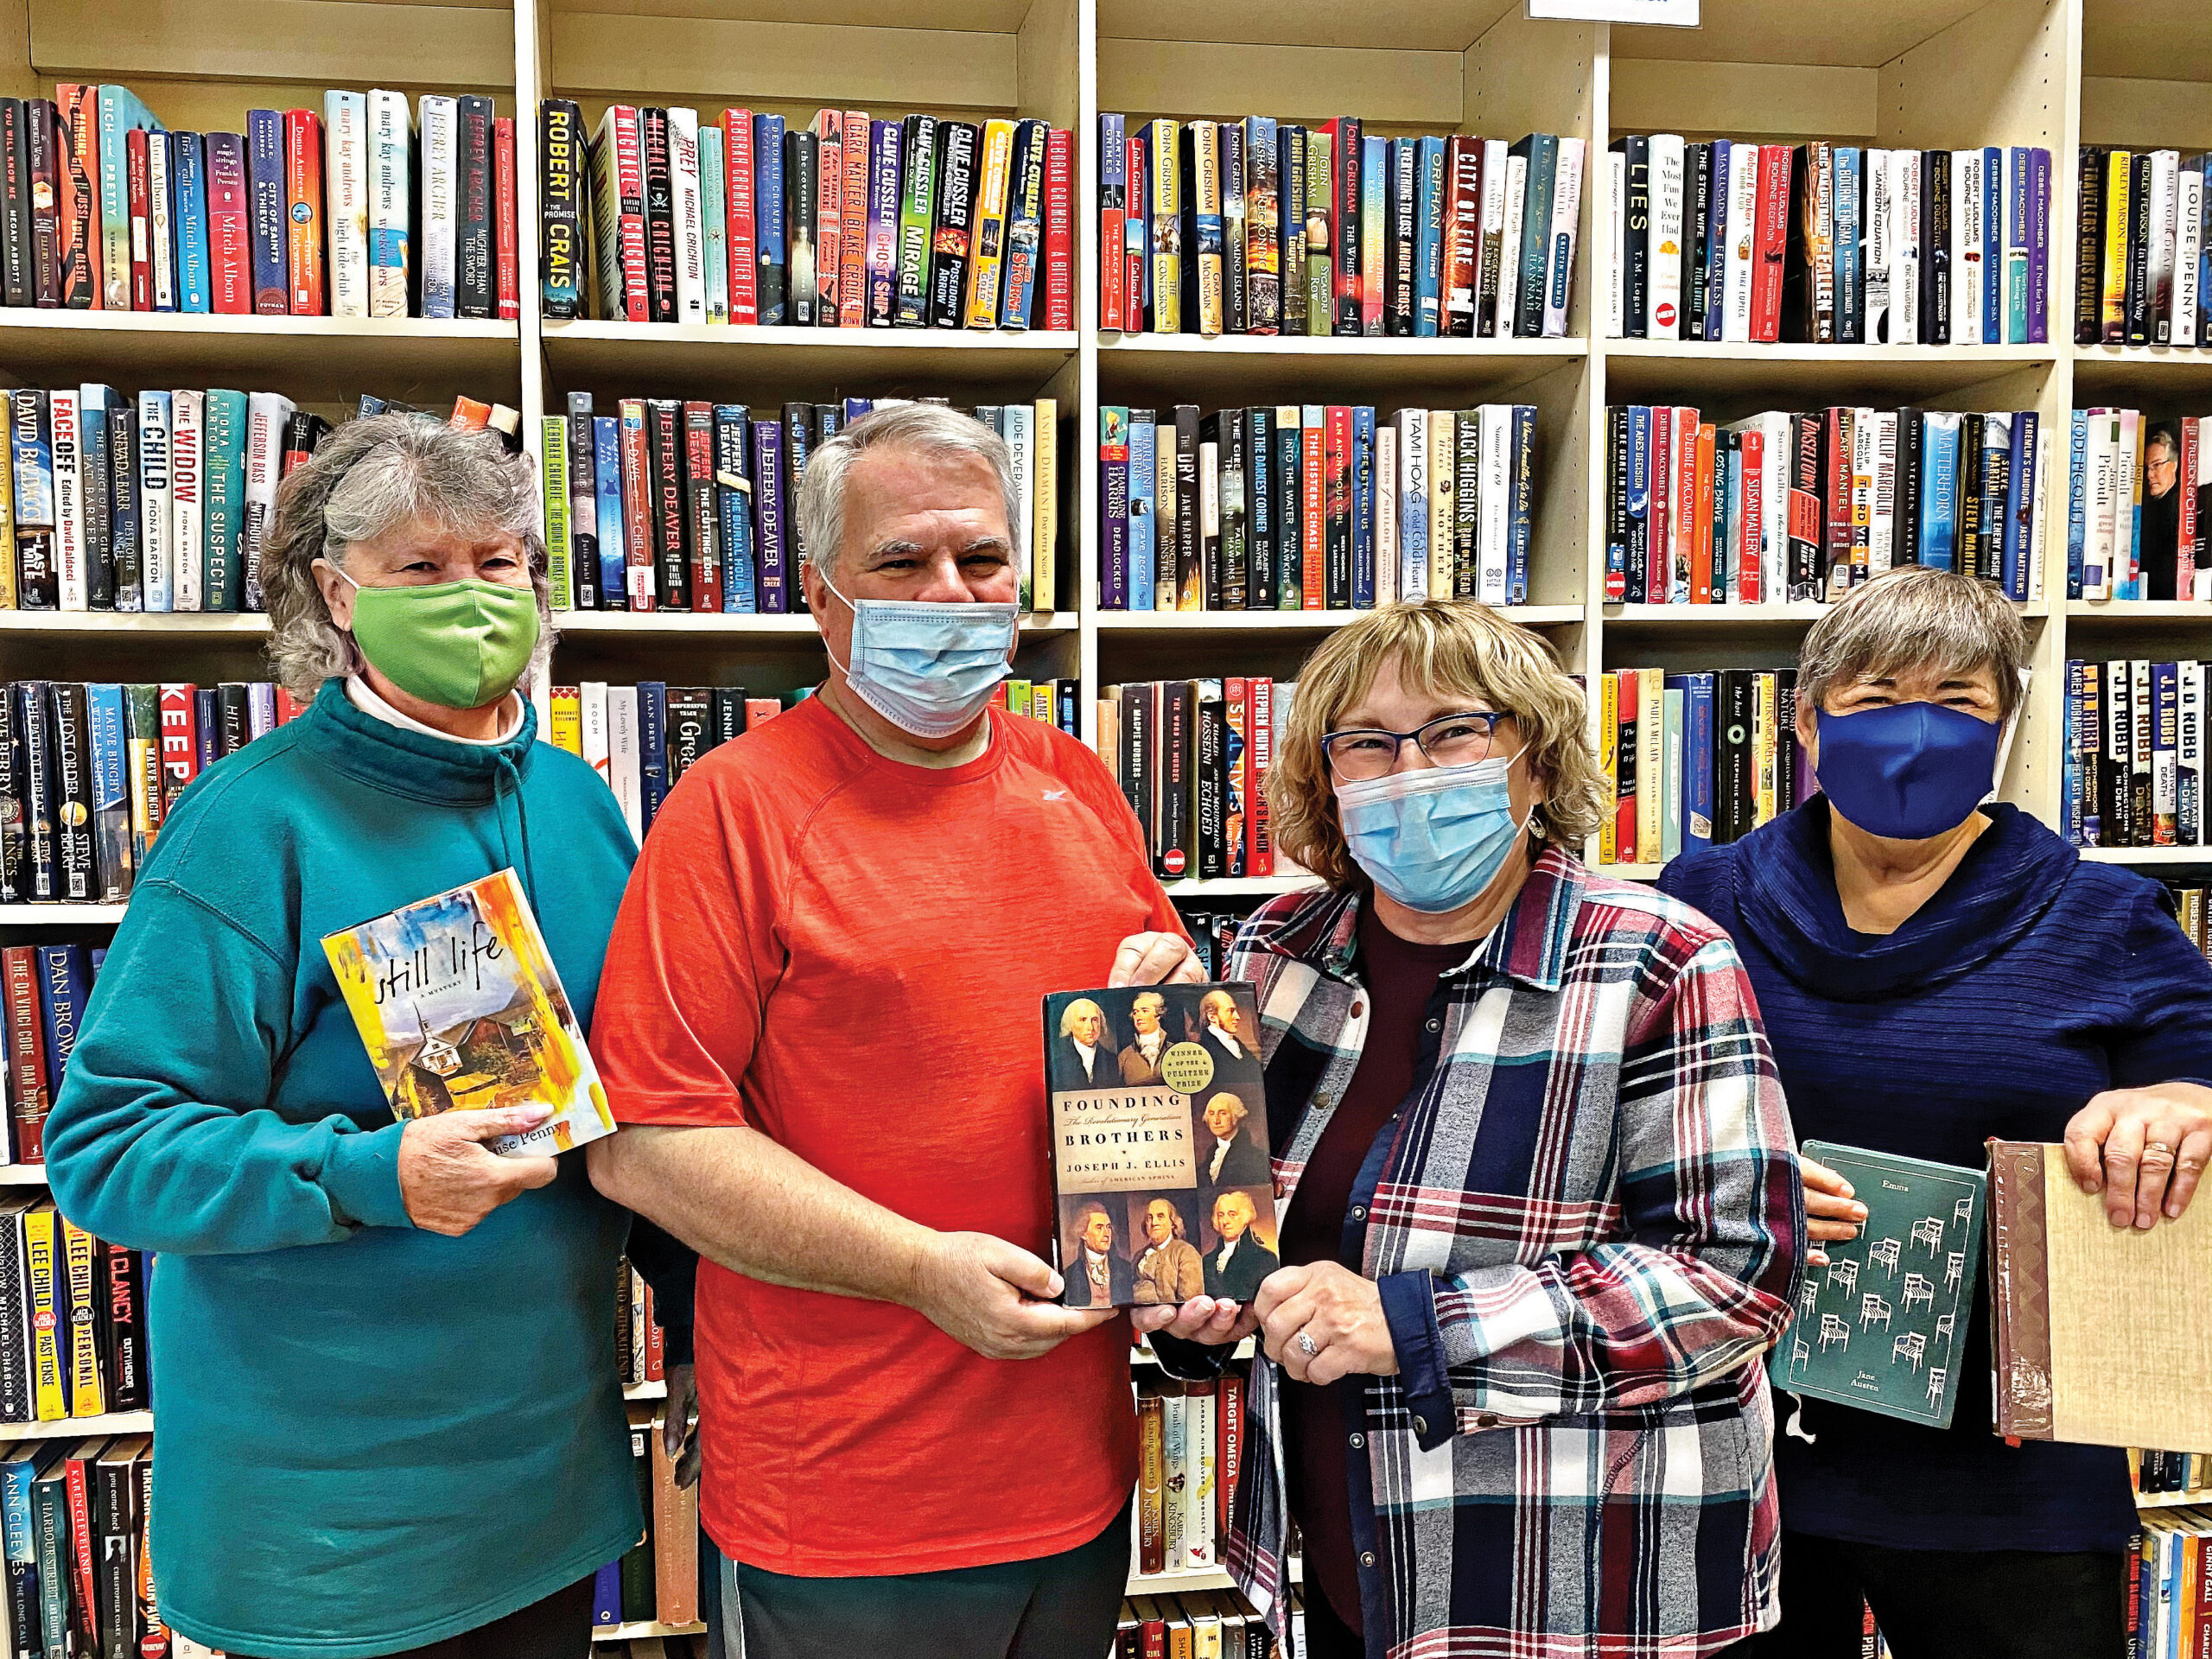 FOL donates hardcopy editions of the books scheduled for discussion in 2021. Left to right (behind the masks) are Librarian Doris Koenig, FOL Chair Alan Albarran, Library Director Linda Terry, and Librarian Diane van Naerssen.